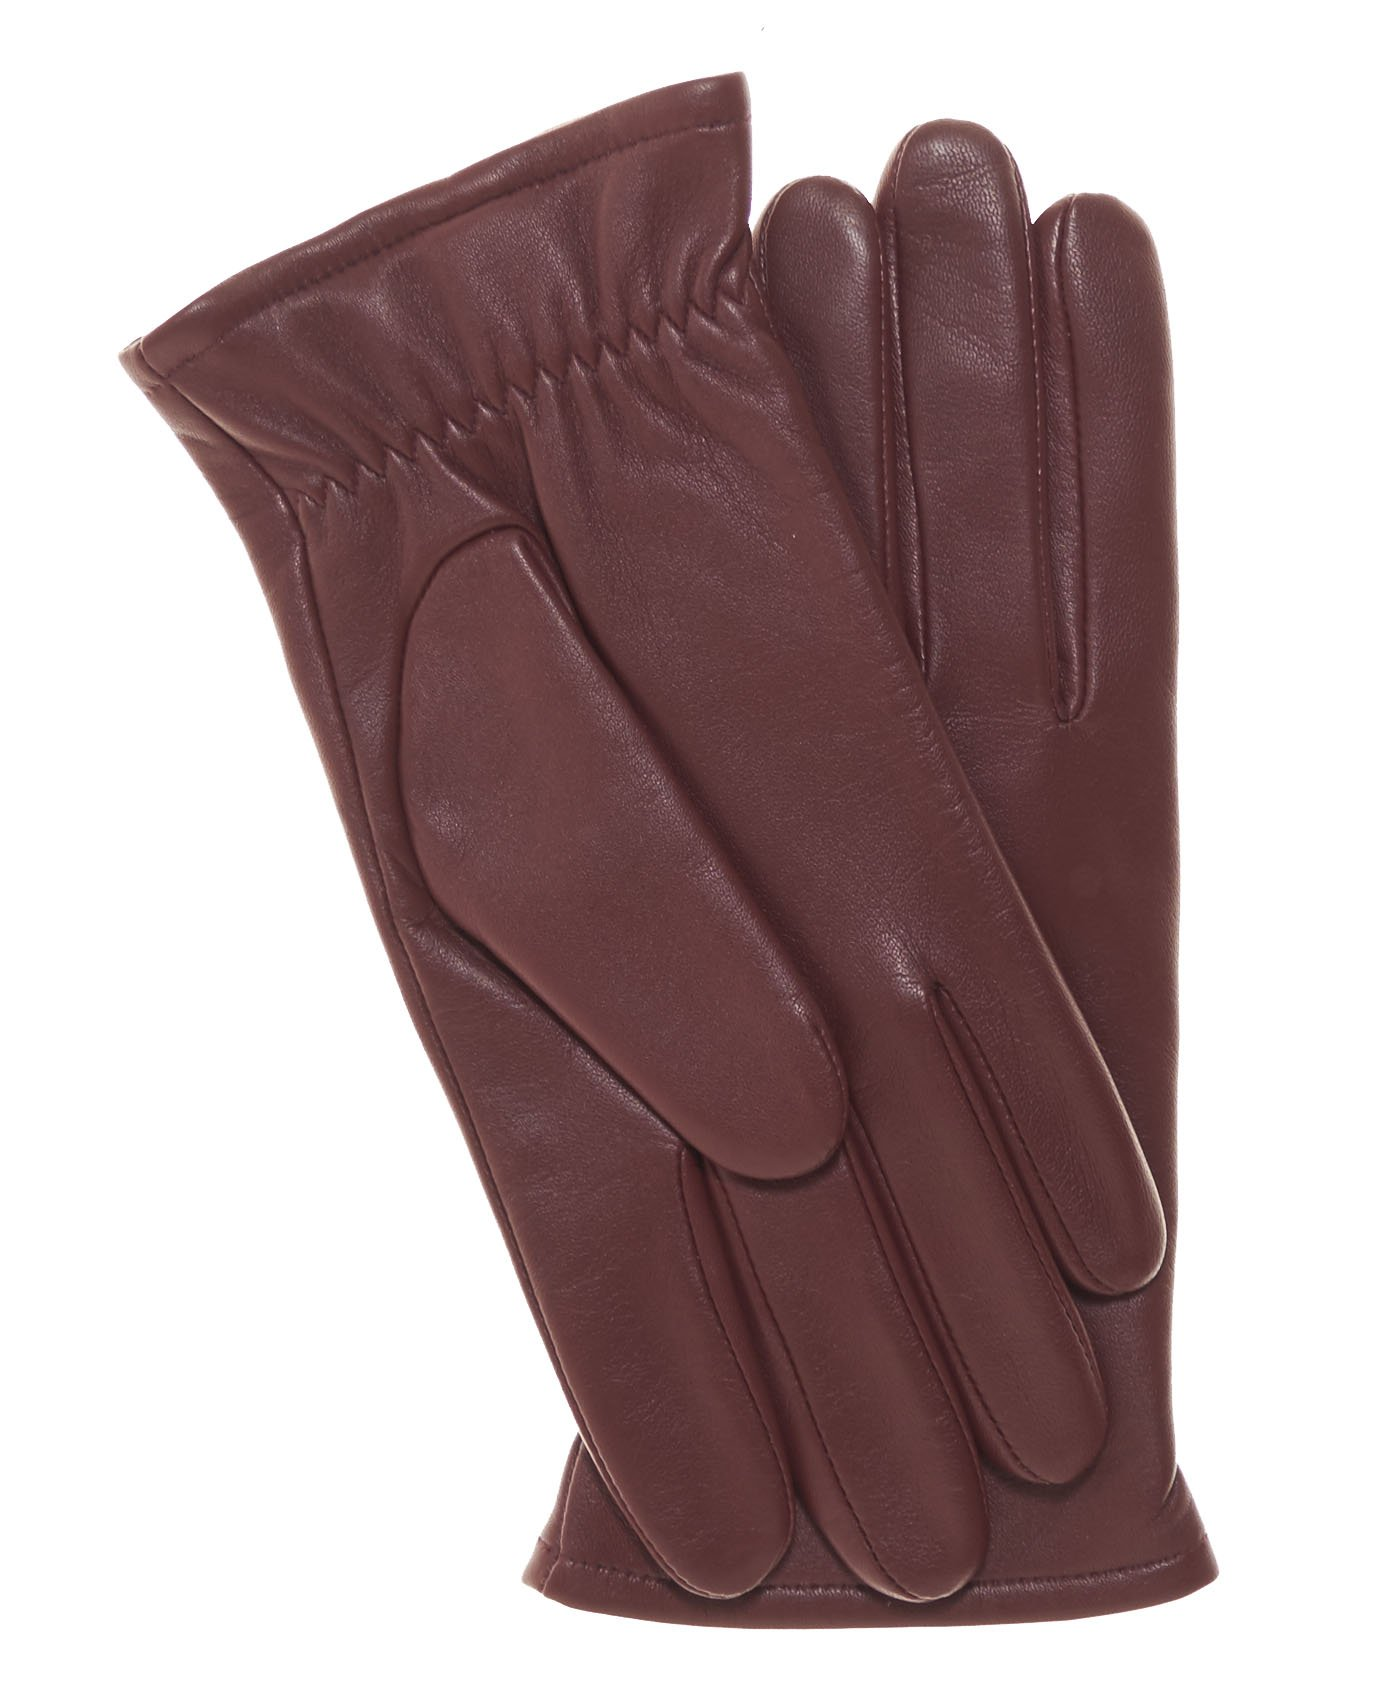 Pratt and Hart Women's Classic Thinsulate Lined Leather Gloves Size 7 1/2 Color Black by Pratt and Hart (Image #5)